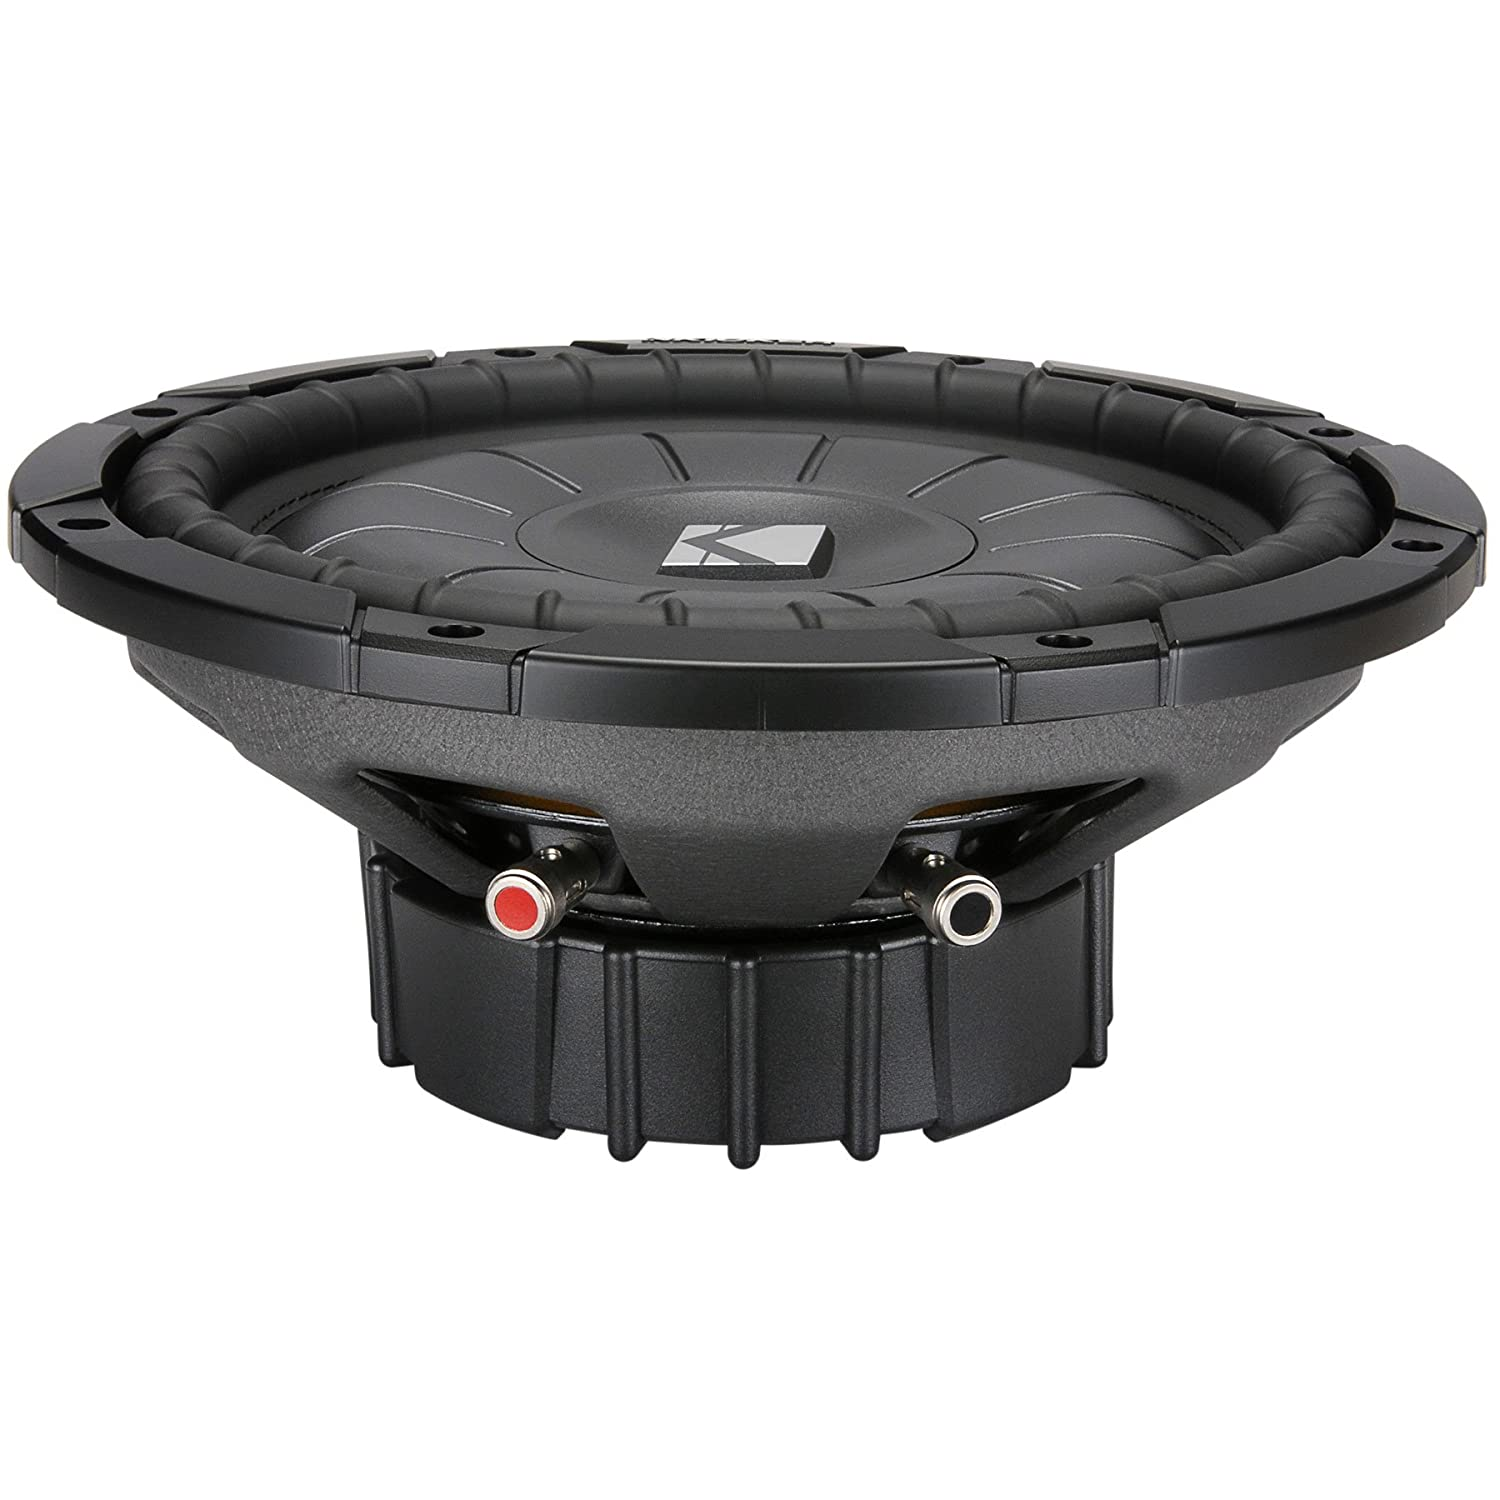 Best Shallow Mount Subwoofer Reviews 6